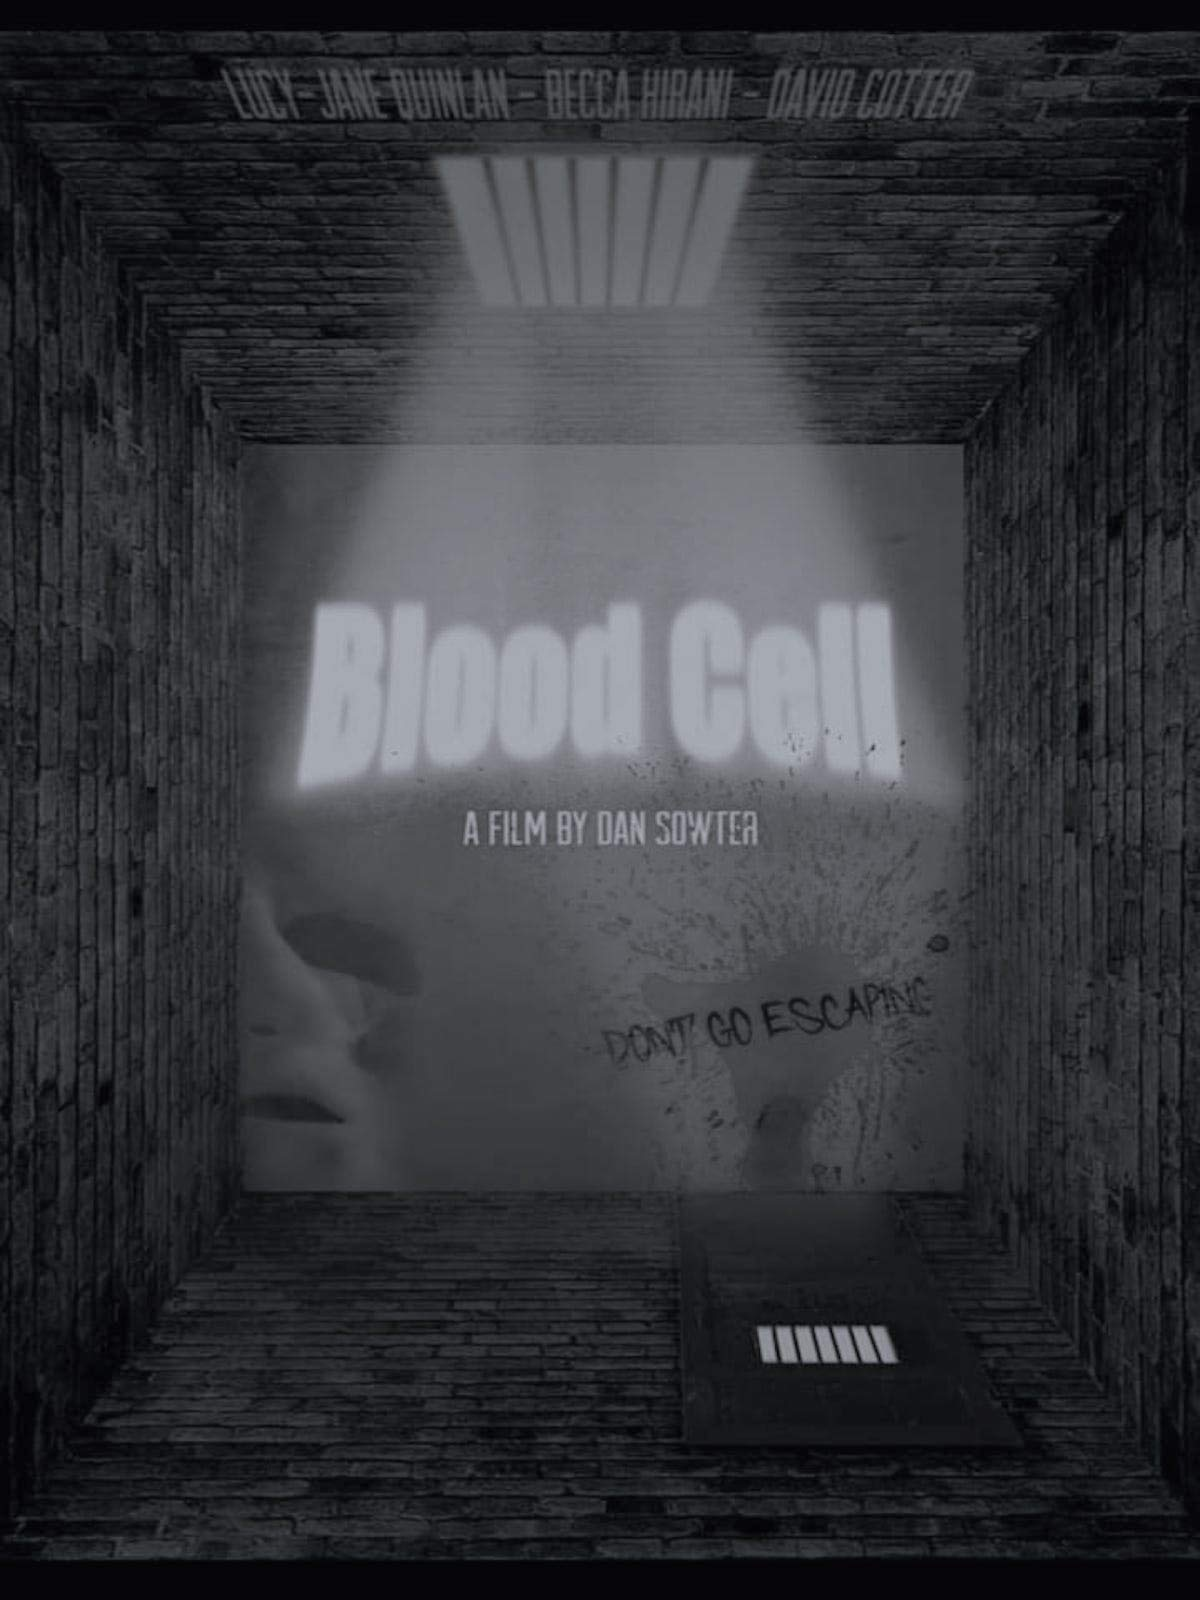 Blood Cell - Gothic Cut